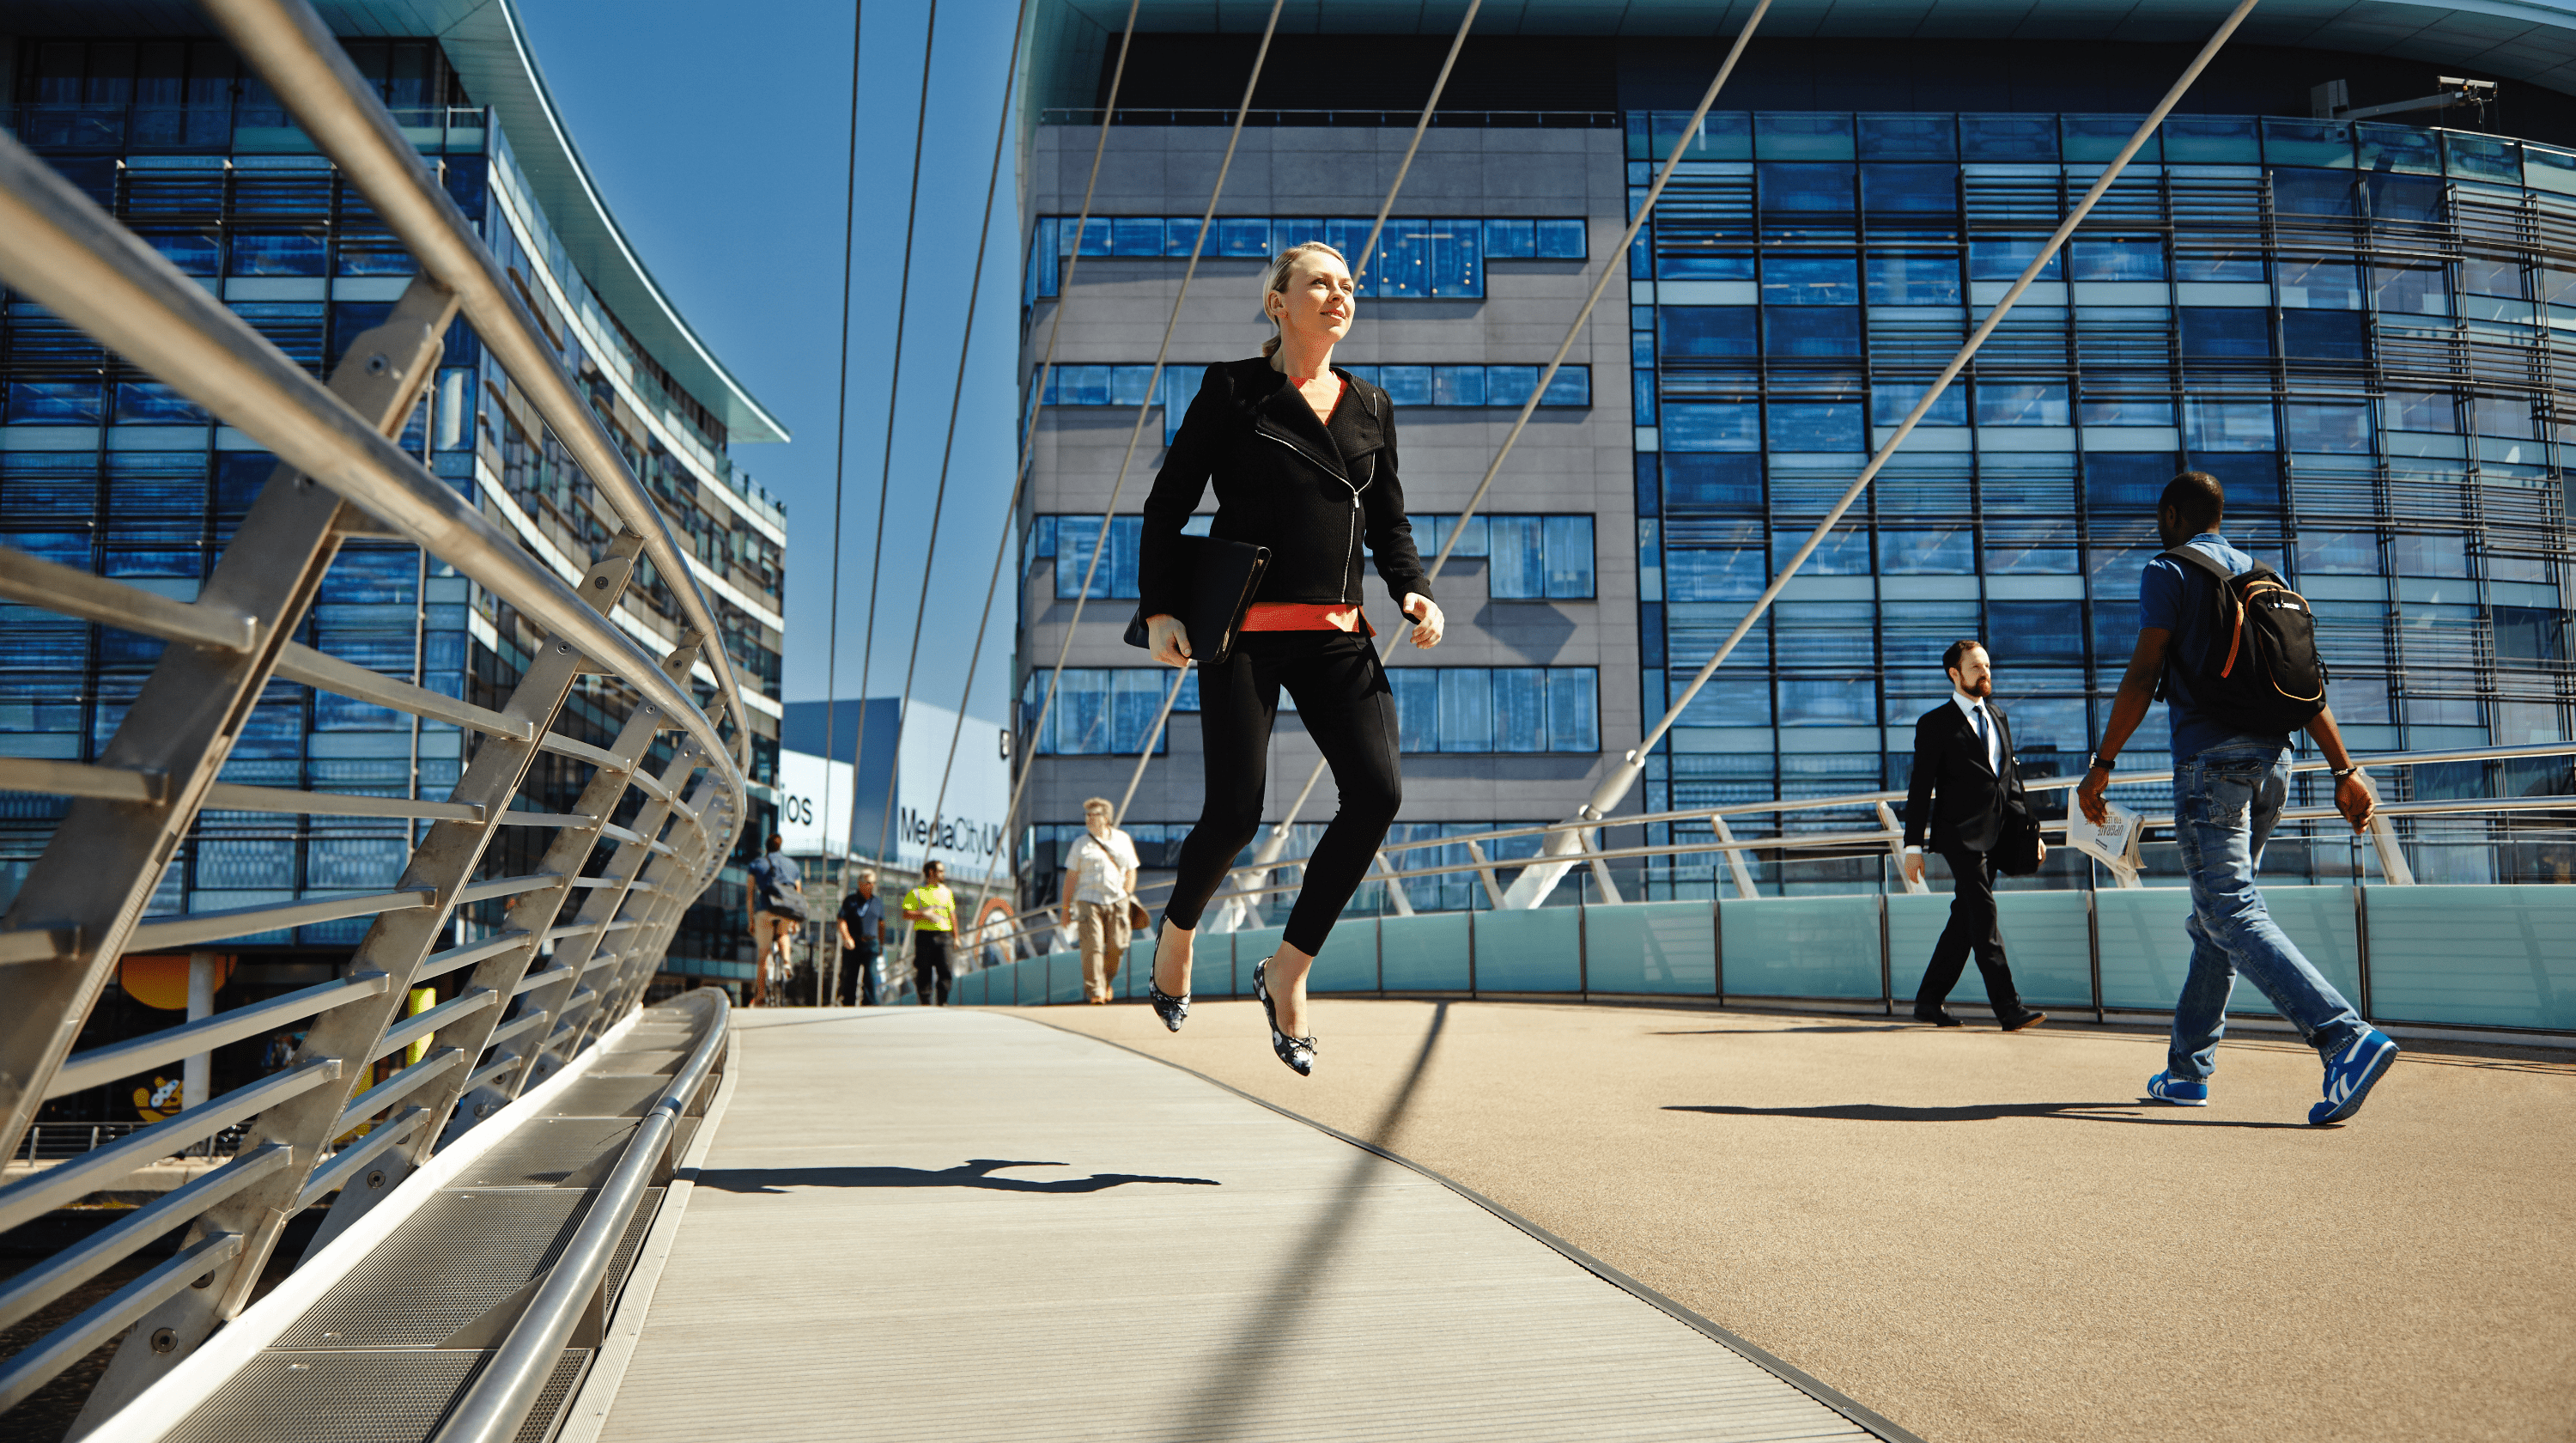 University of Salford - Postgraduate campaign and photoshoot